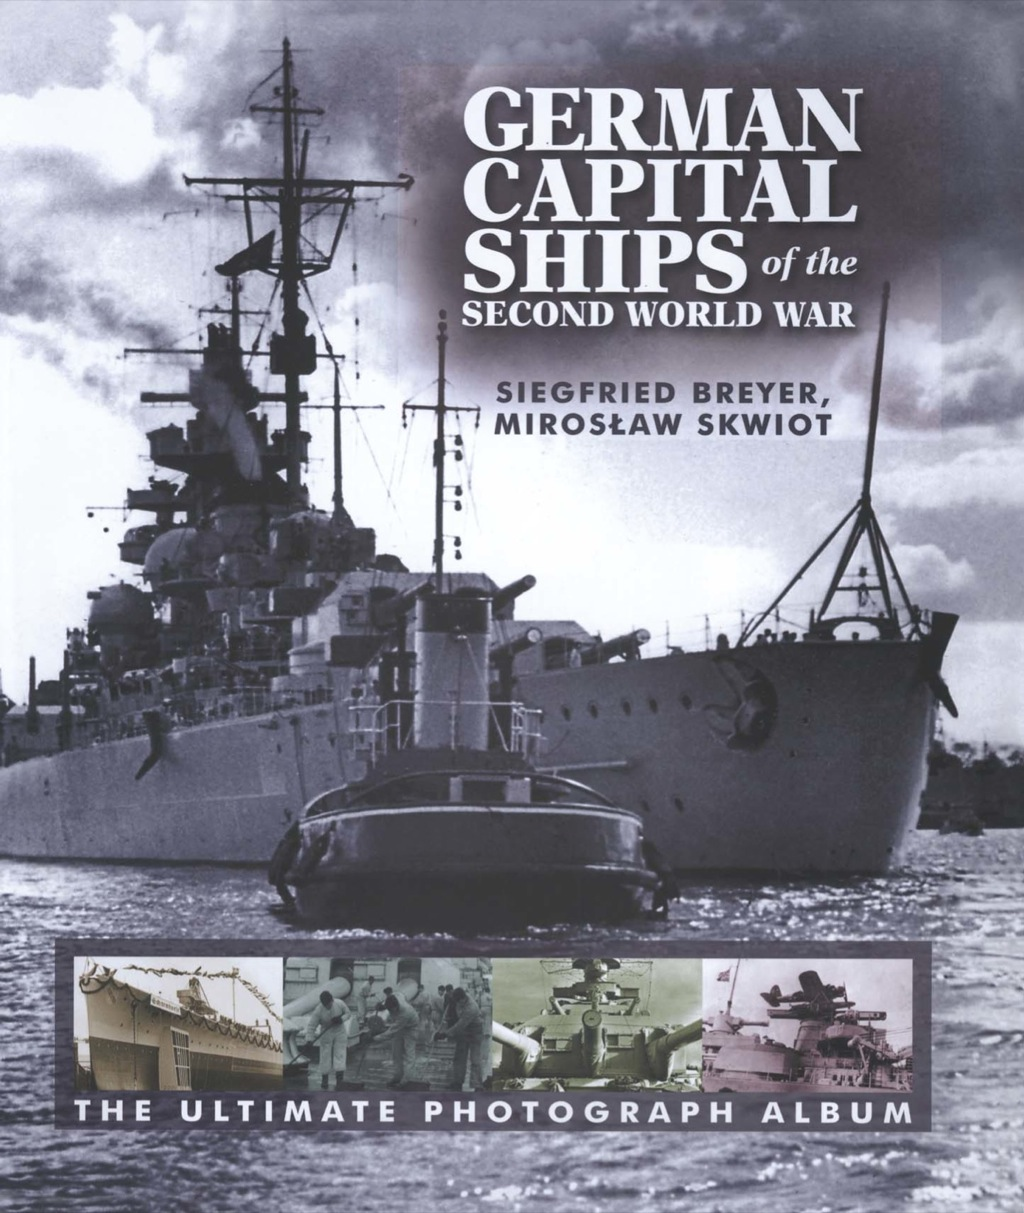 German Capital Ships of the Second World War: The Ultimate Photograph Album (ebook) eBooks